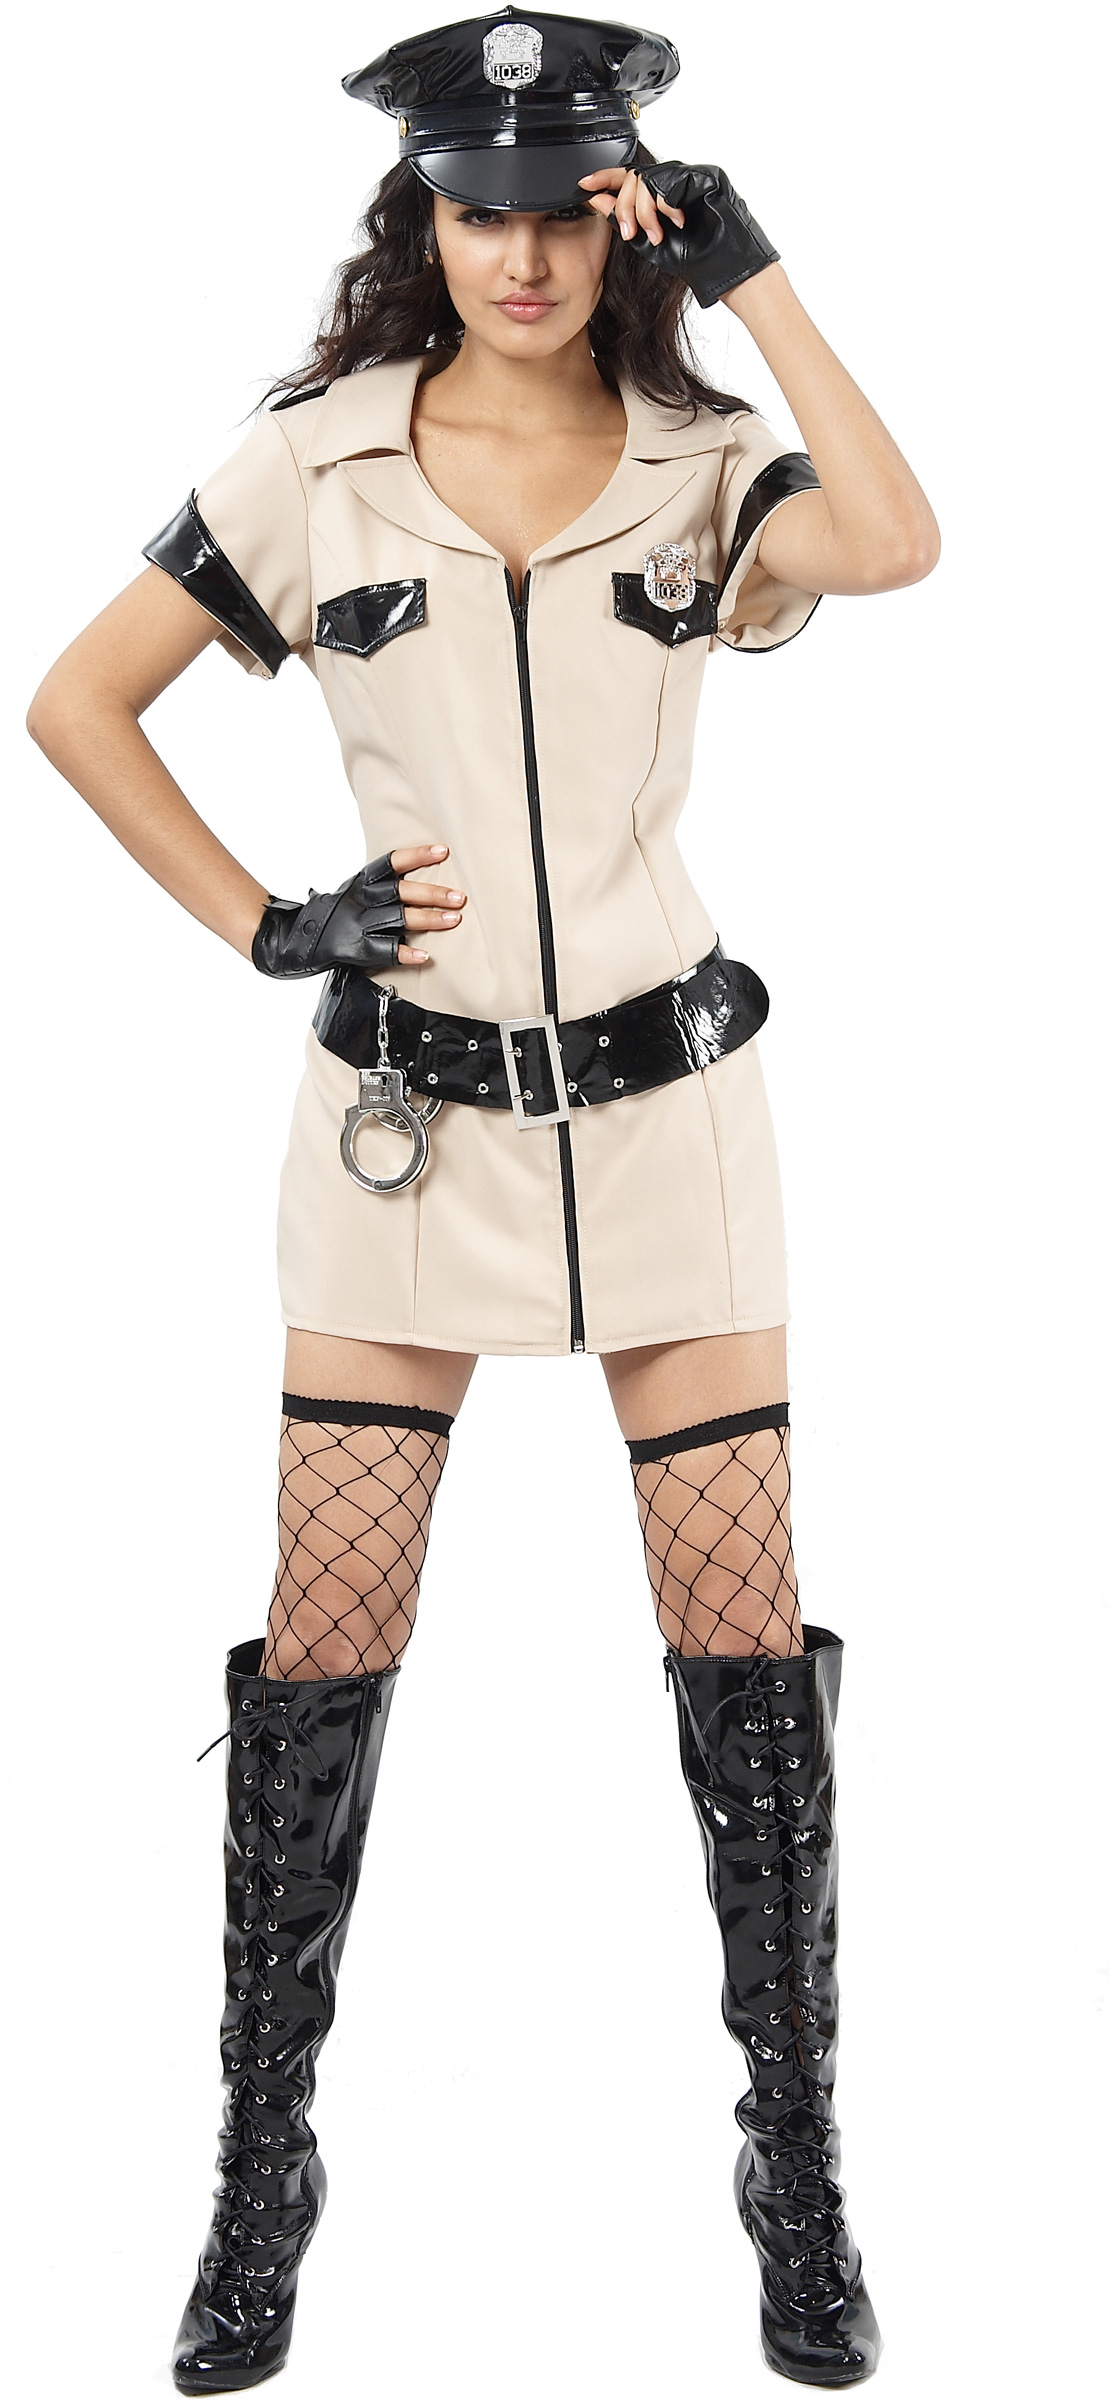 d guisement polici re sexy costume police femme usa. Black Bedroom Furniture Sets. Home Design Ideas